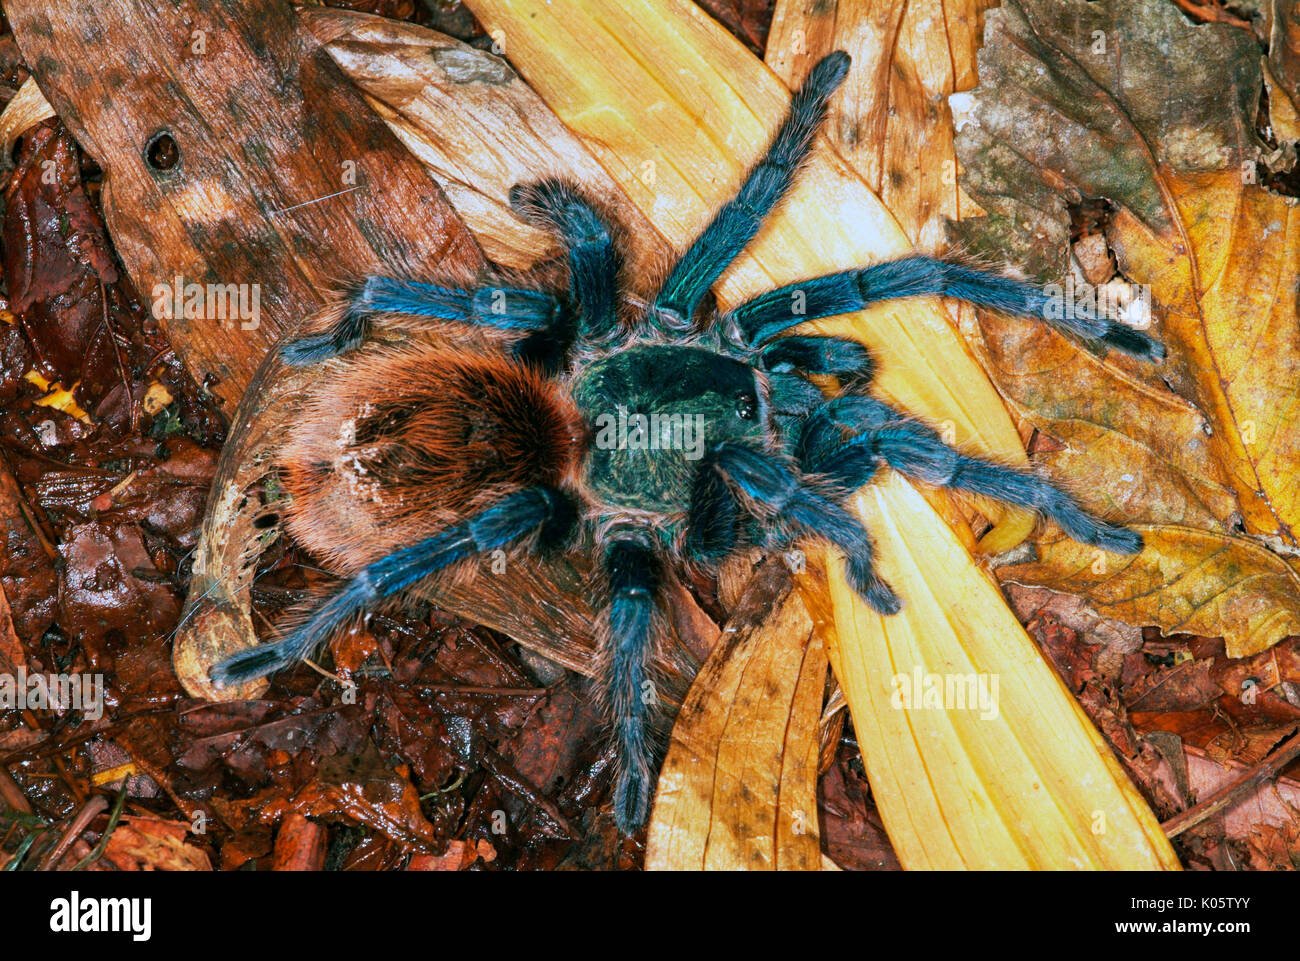 Leaf Litter Spider Stock Photos & Leaf Litter Spider Stock ...